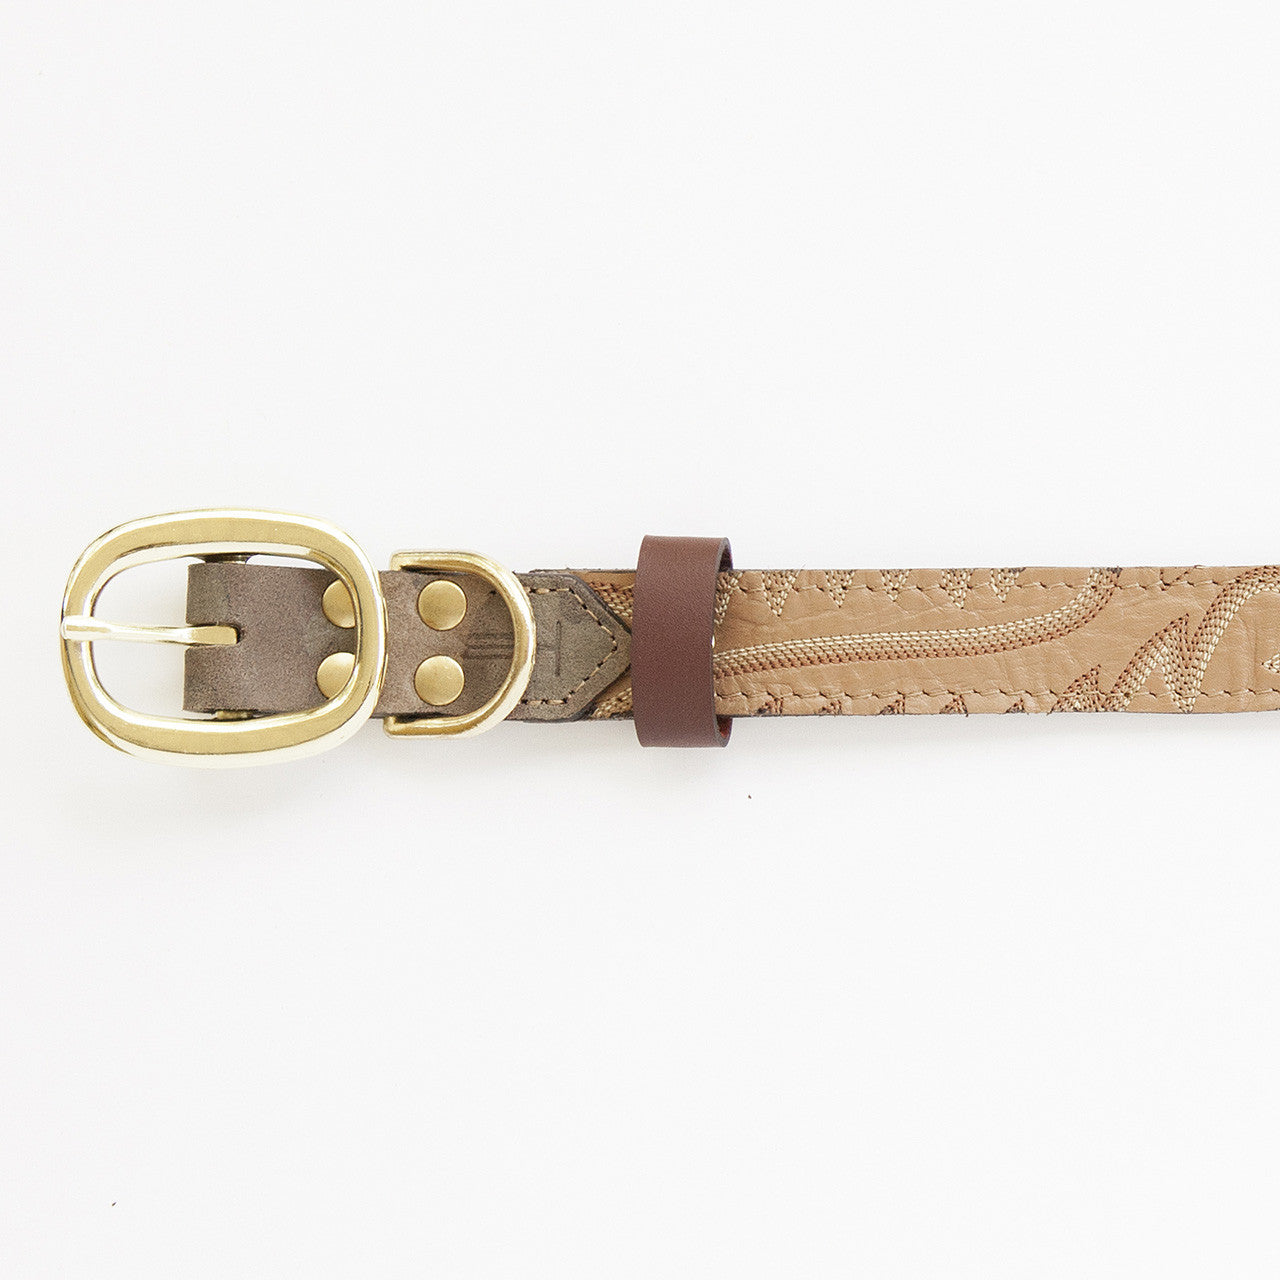 Camo Dog Collar with Tan Leather + Brown and White Stitching (buckle)